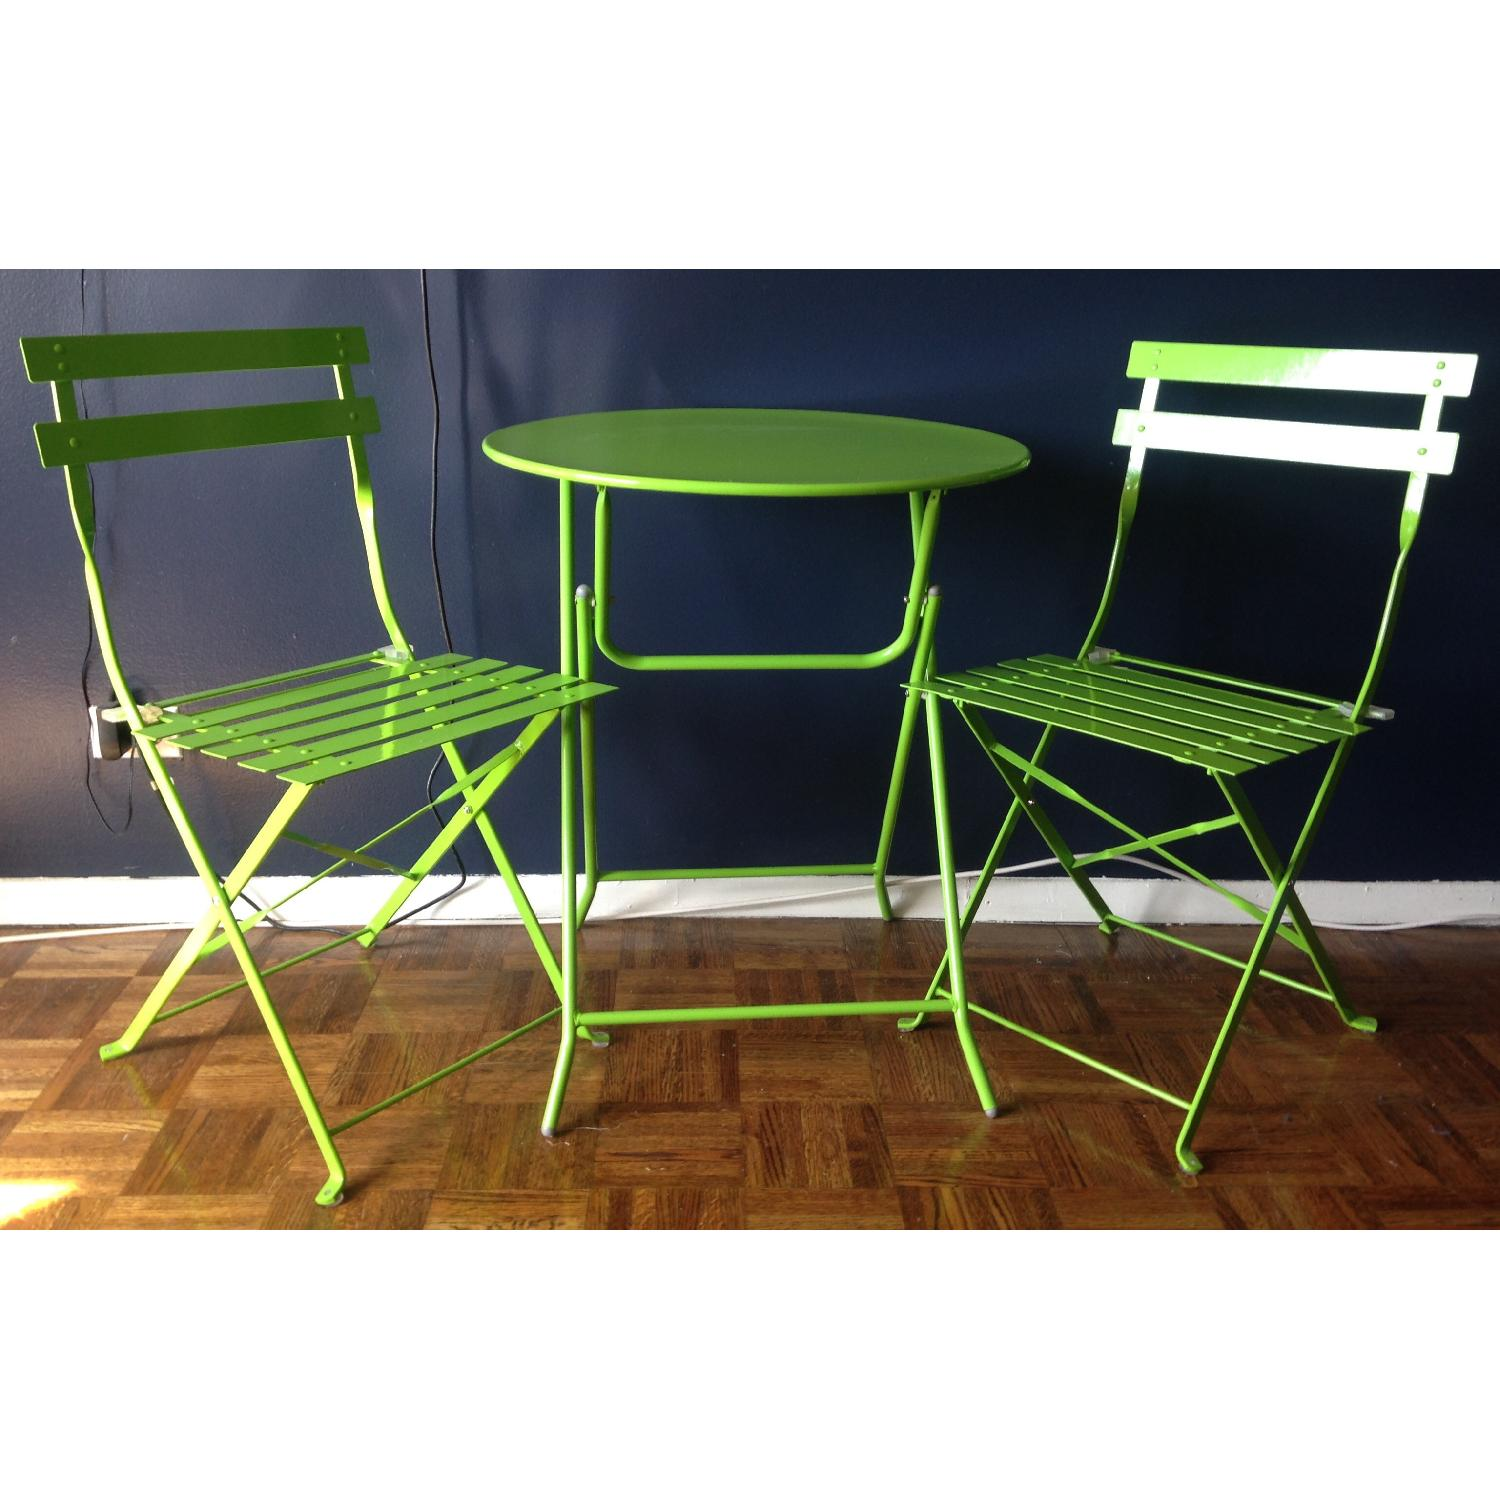 Fun Lime Green Bistro Table w/ 2 Chairs - image-1